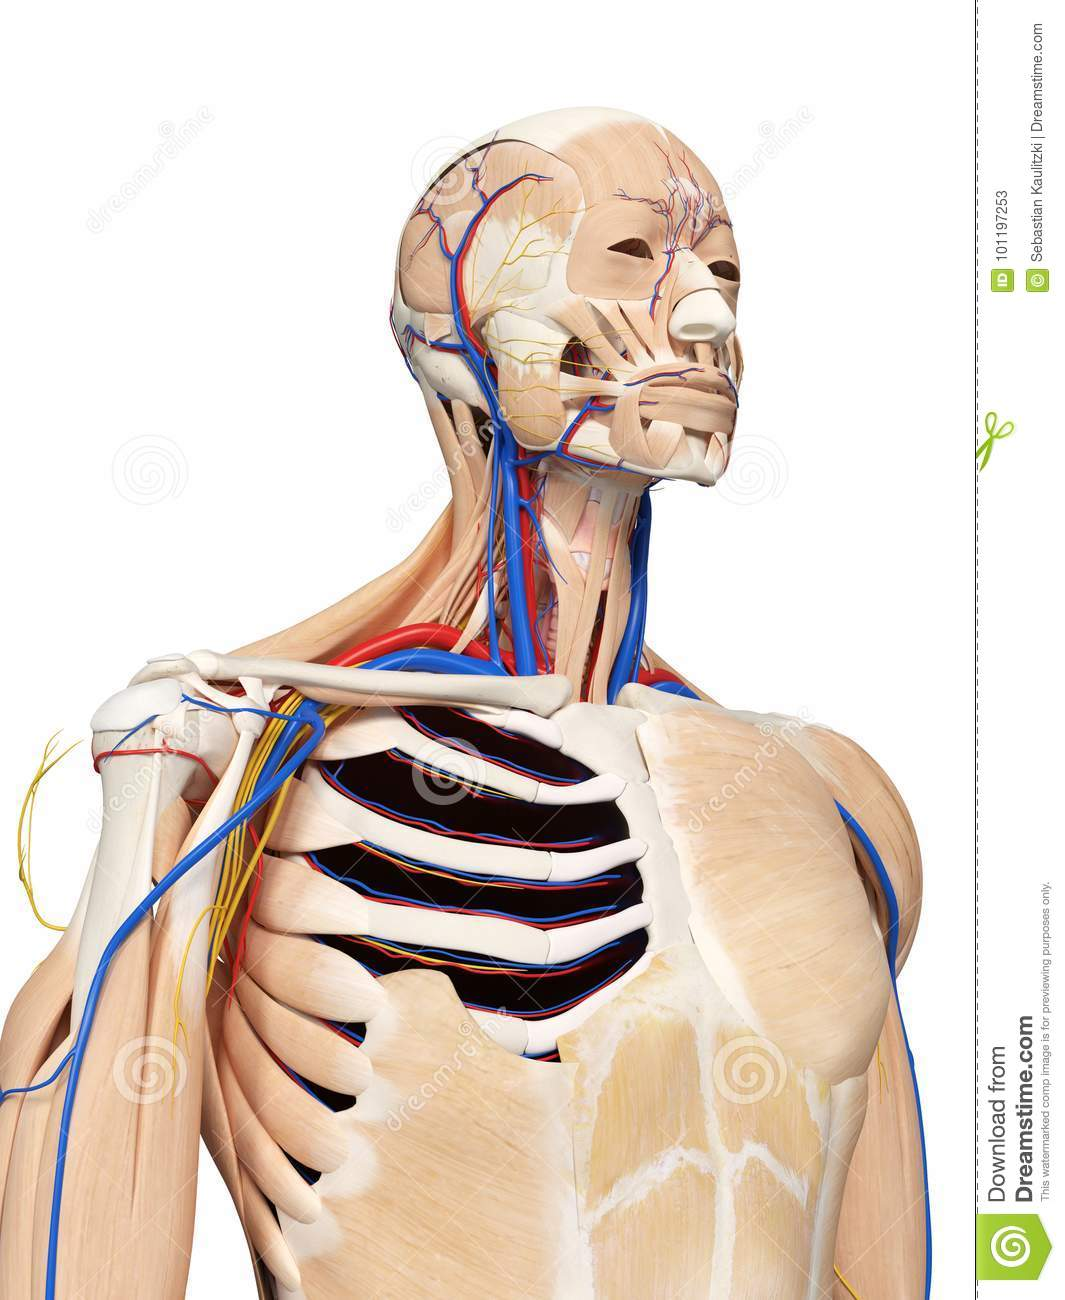 hight resolution of 3d rendered medically accurate illustration of the head and neck anatomy